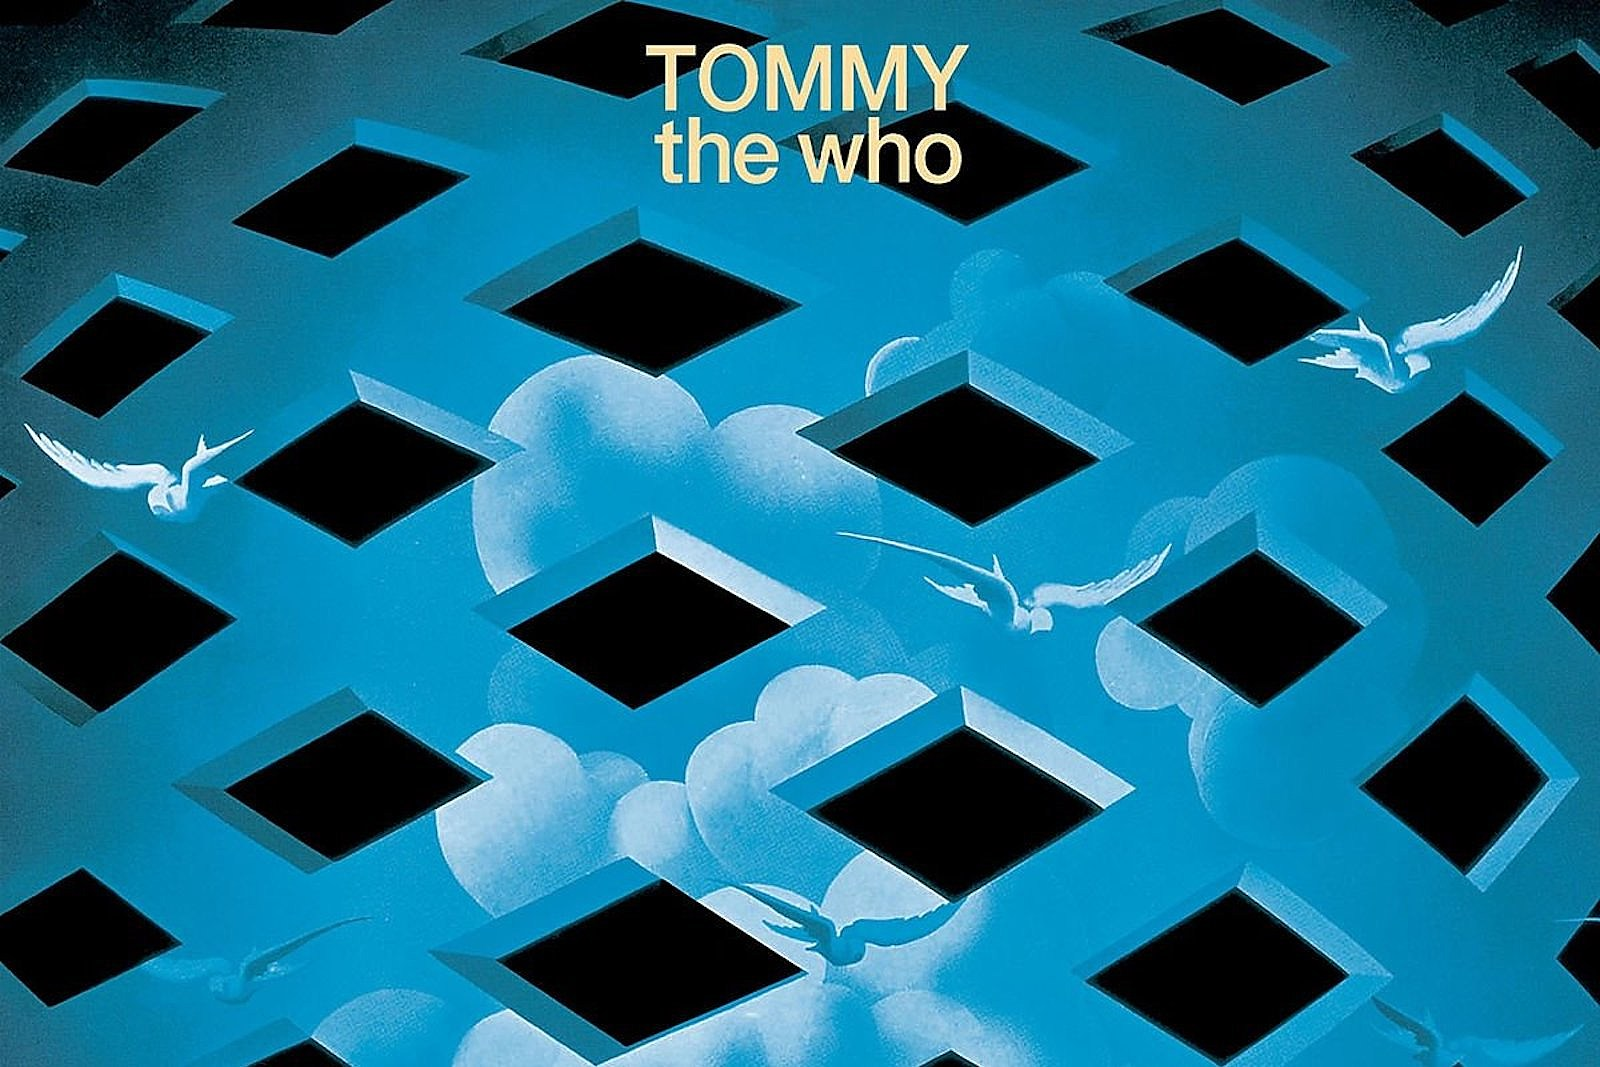 best concept albums-TOMMY the who